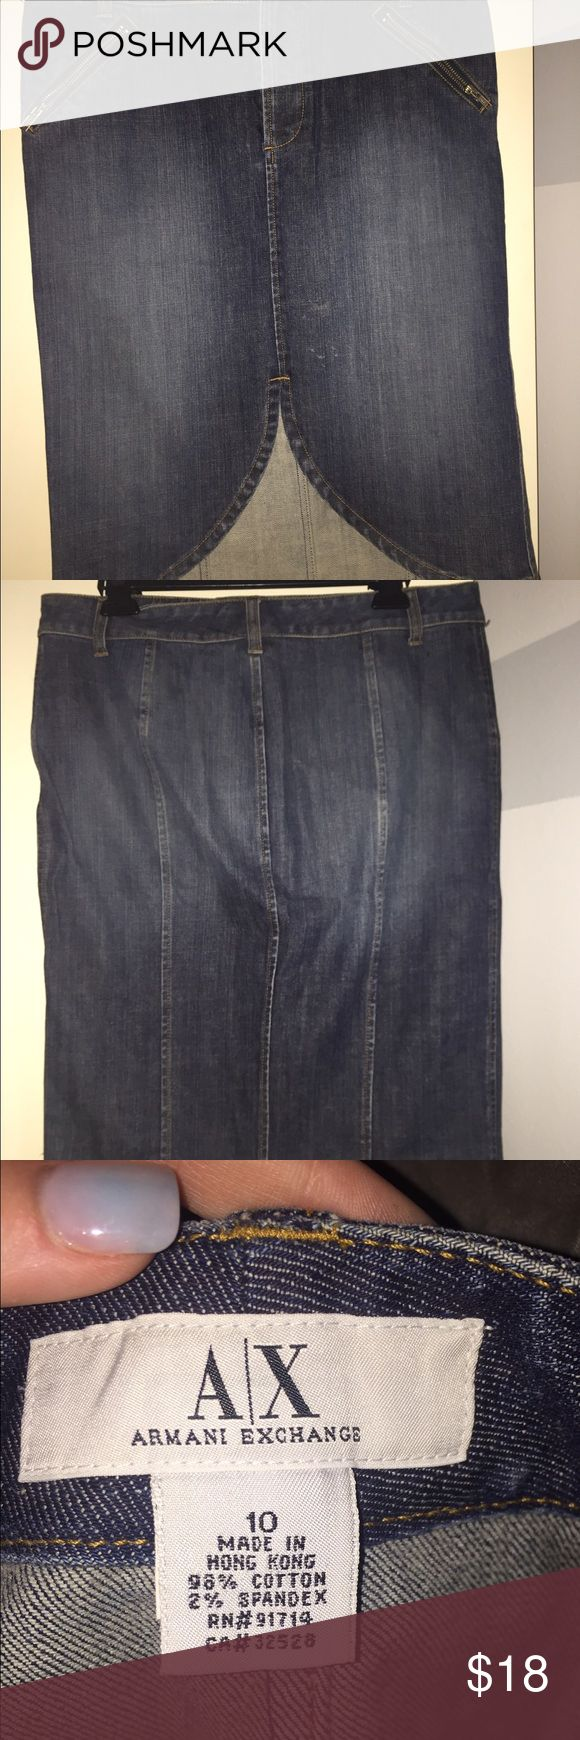 Armani Exchange Jean Skirt perfect condition, super cute/trendy! Armani Exchange Skirts